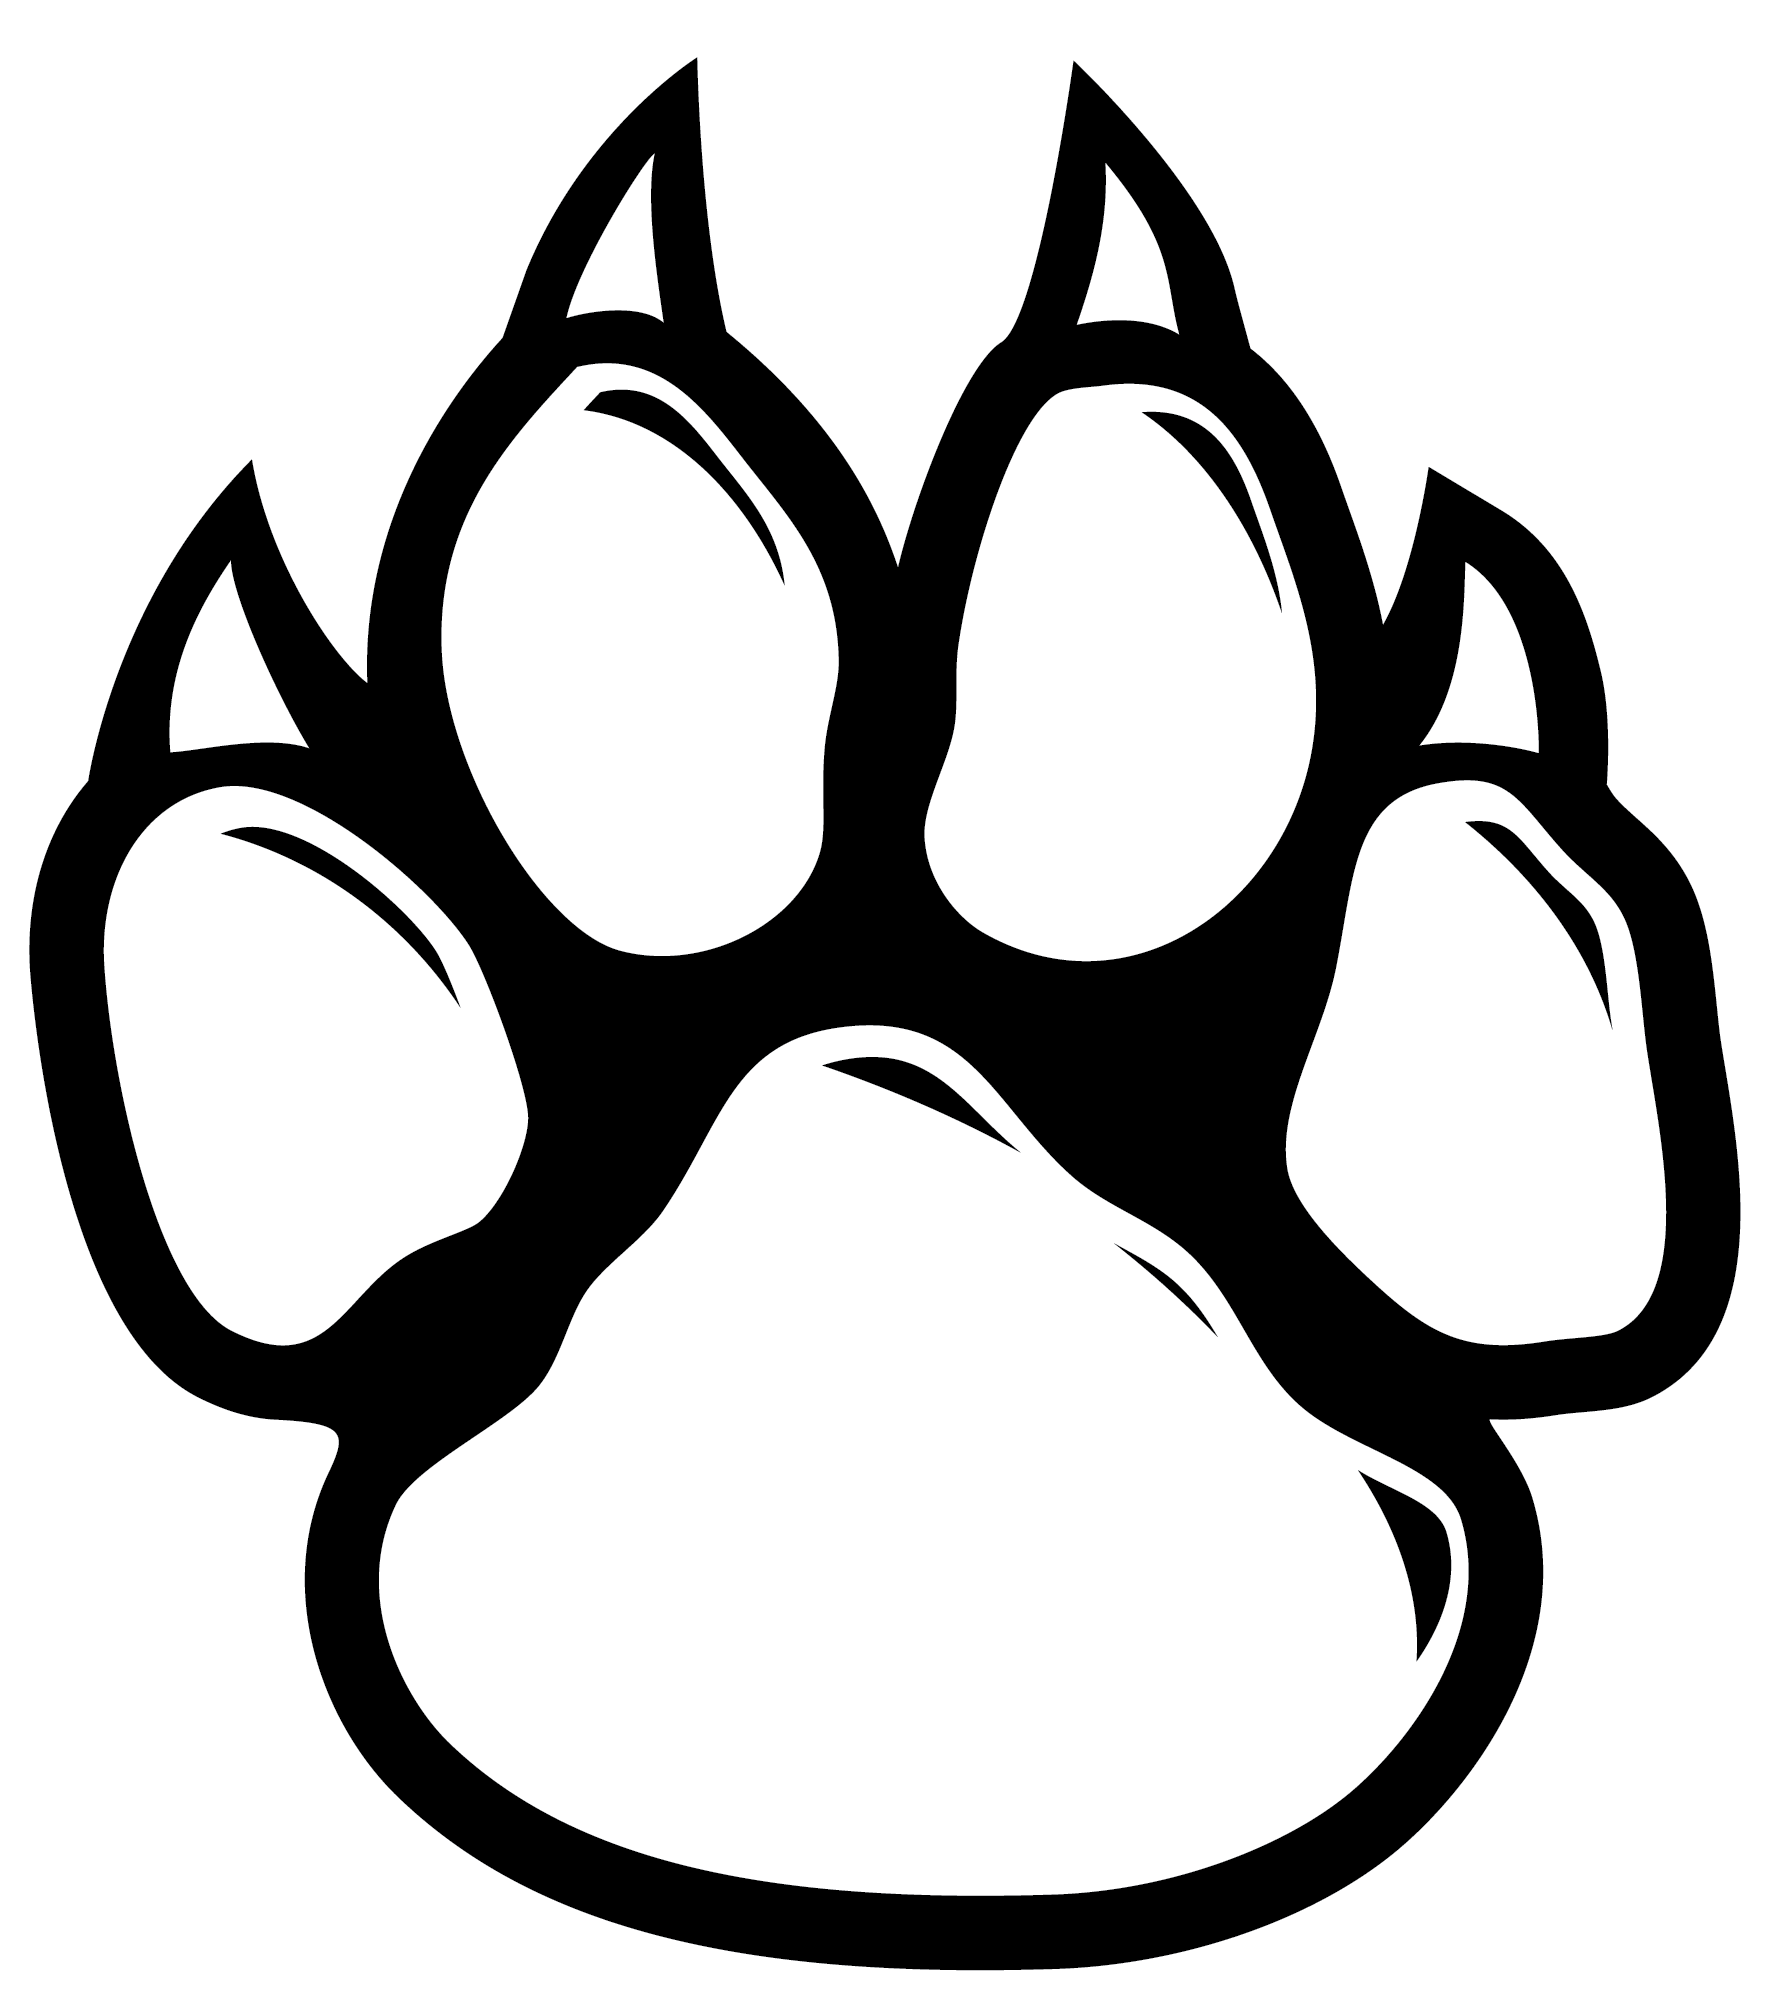 Dog paw black and white clipart picture freeuse library Wildcat Paw Dog Clip art - Cat 1770*2000 transprent Png Free ... picture freeuse library